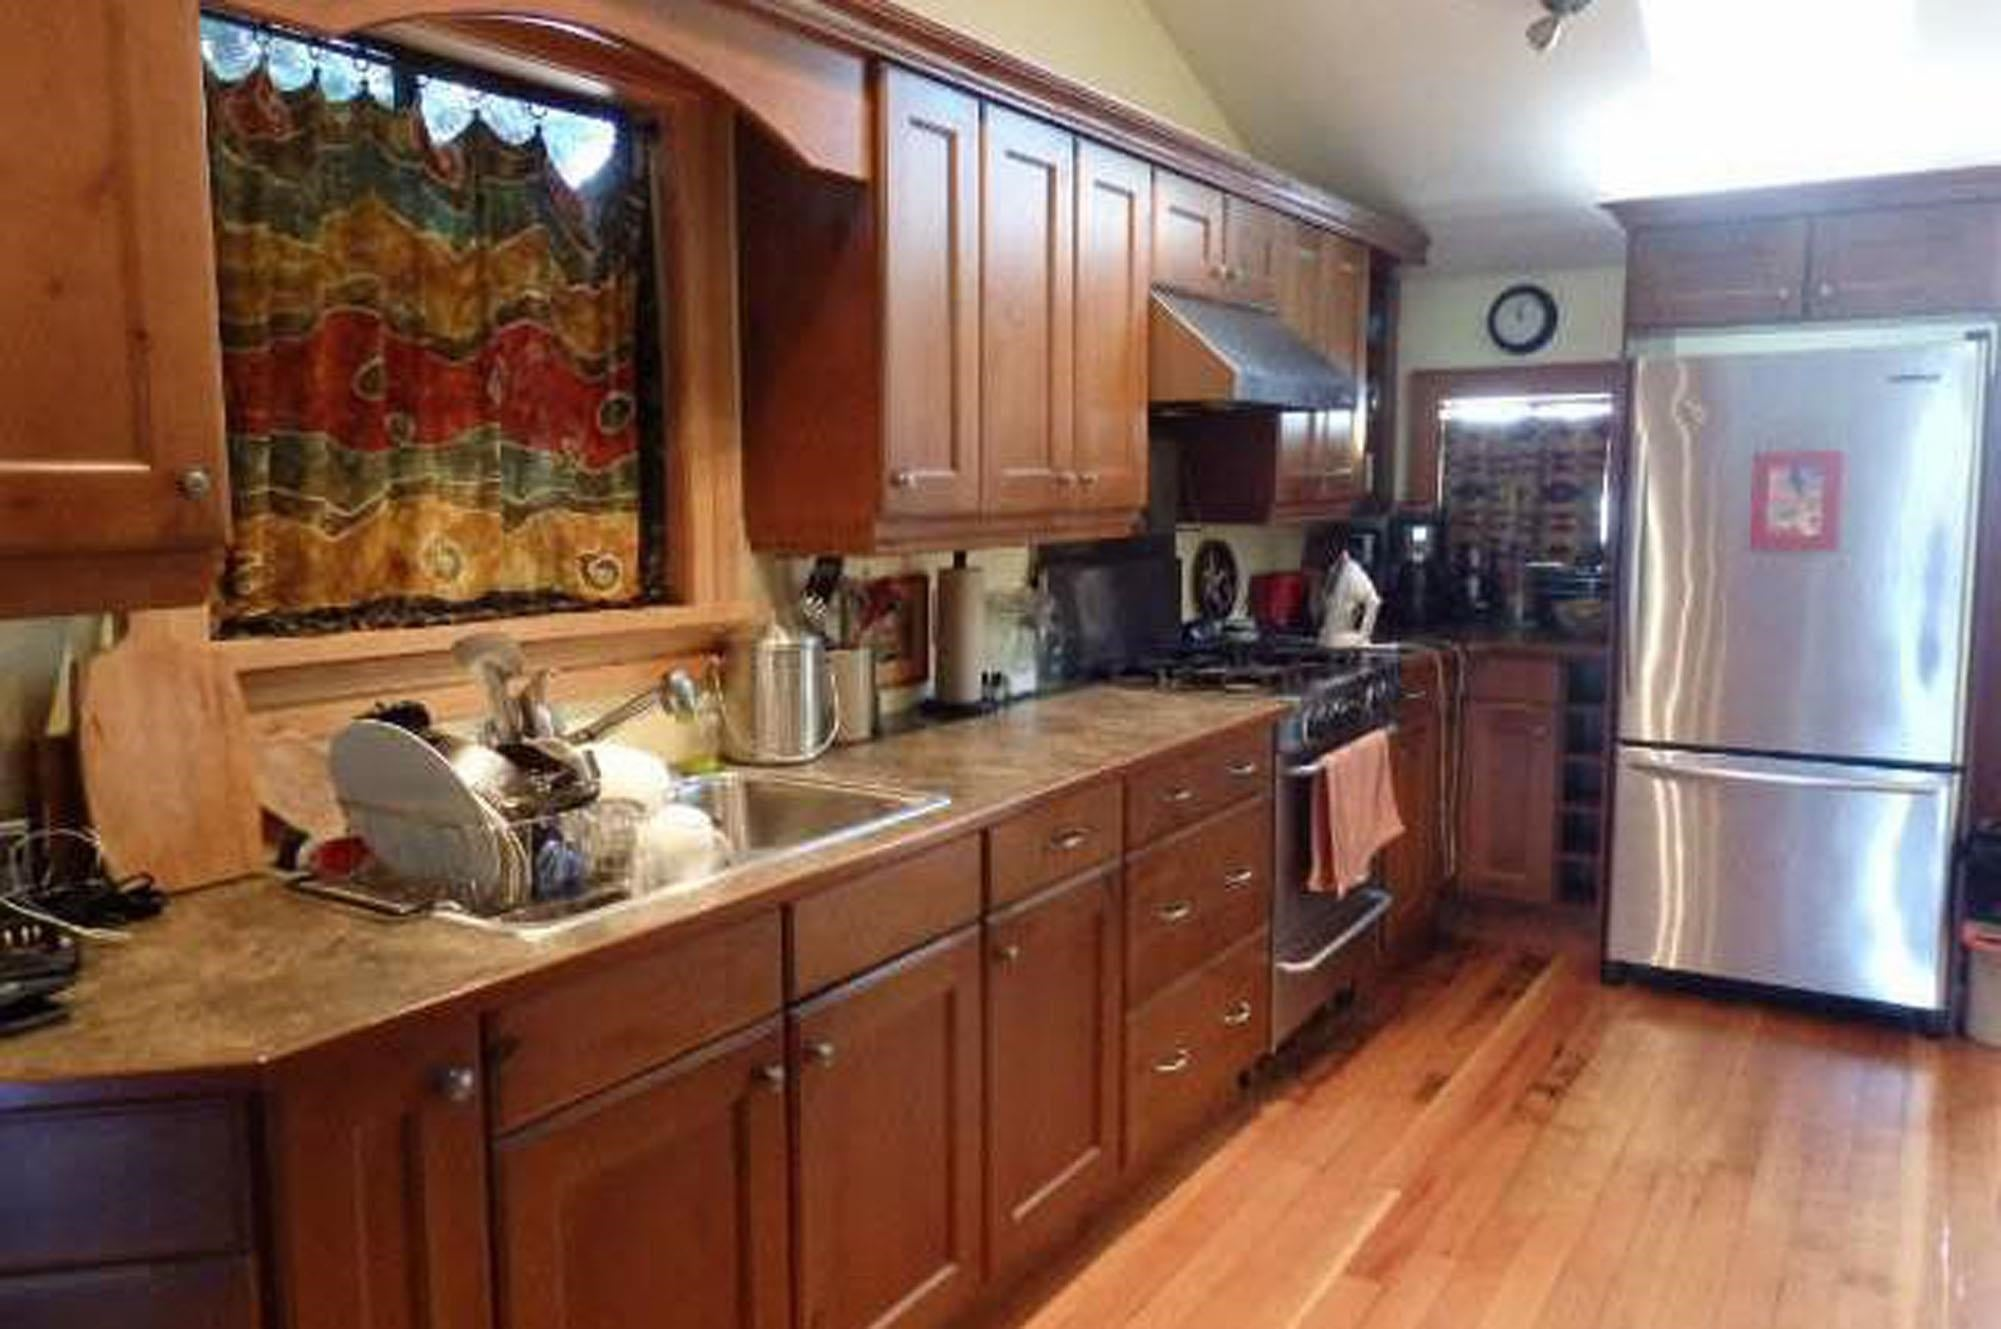 222 E 3RD STREET - Lower Lonsdale House/Single Family for sale, 3 Bedrooms (R2622037) - #4